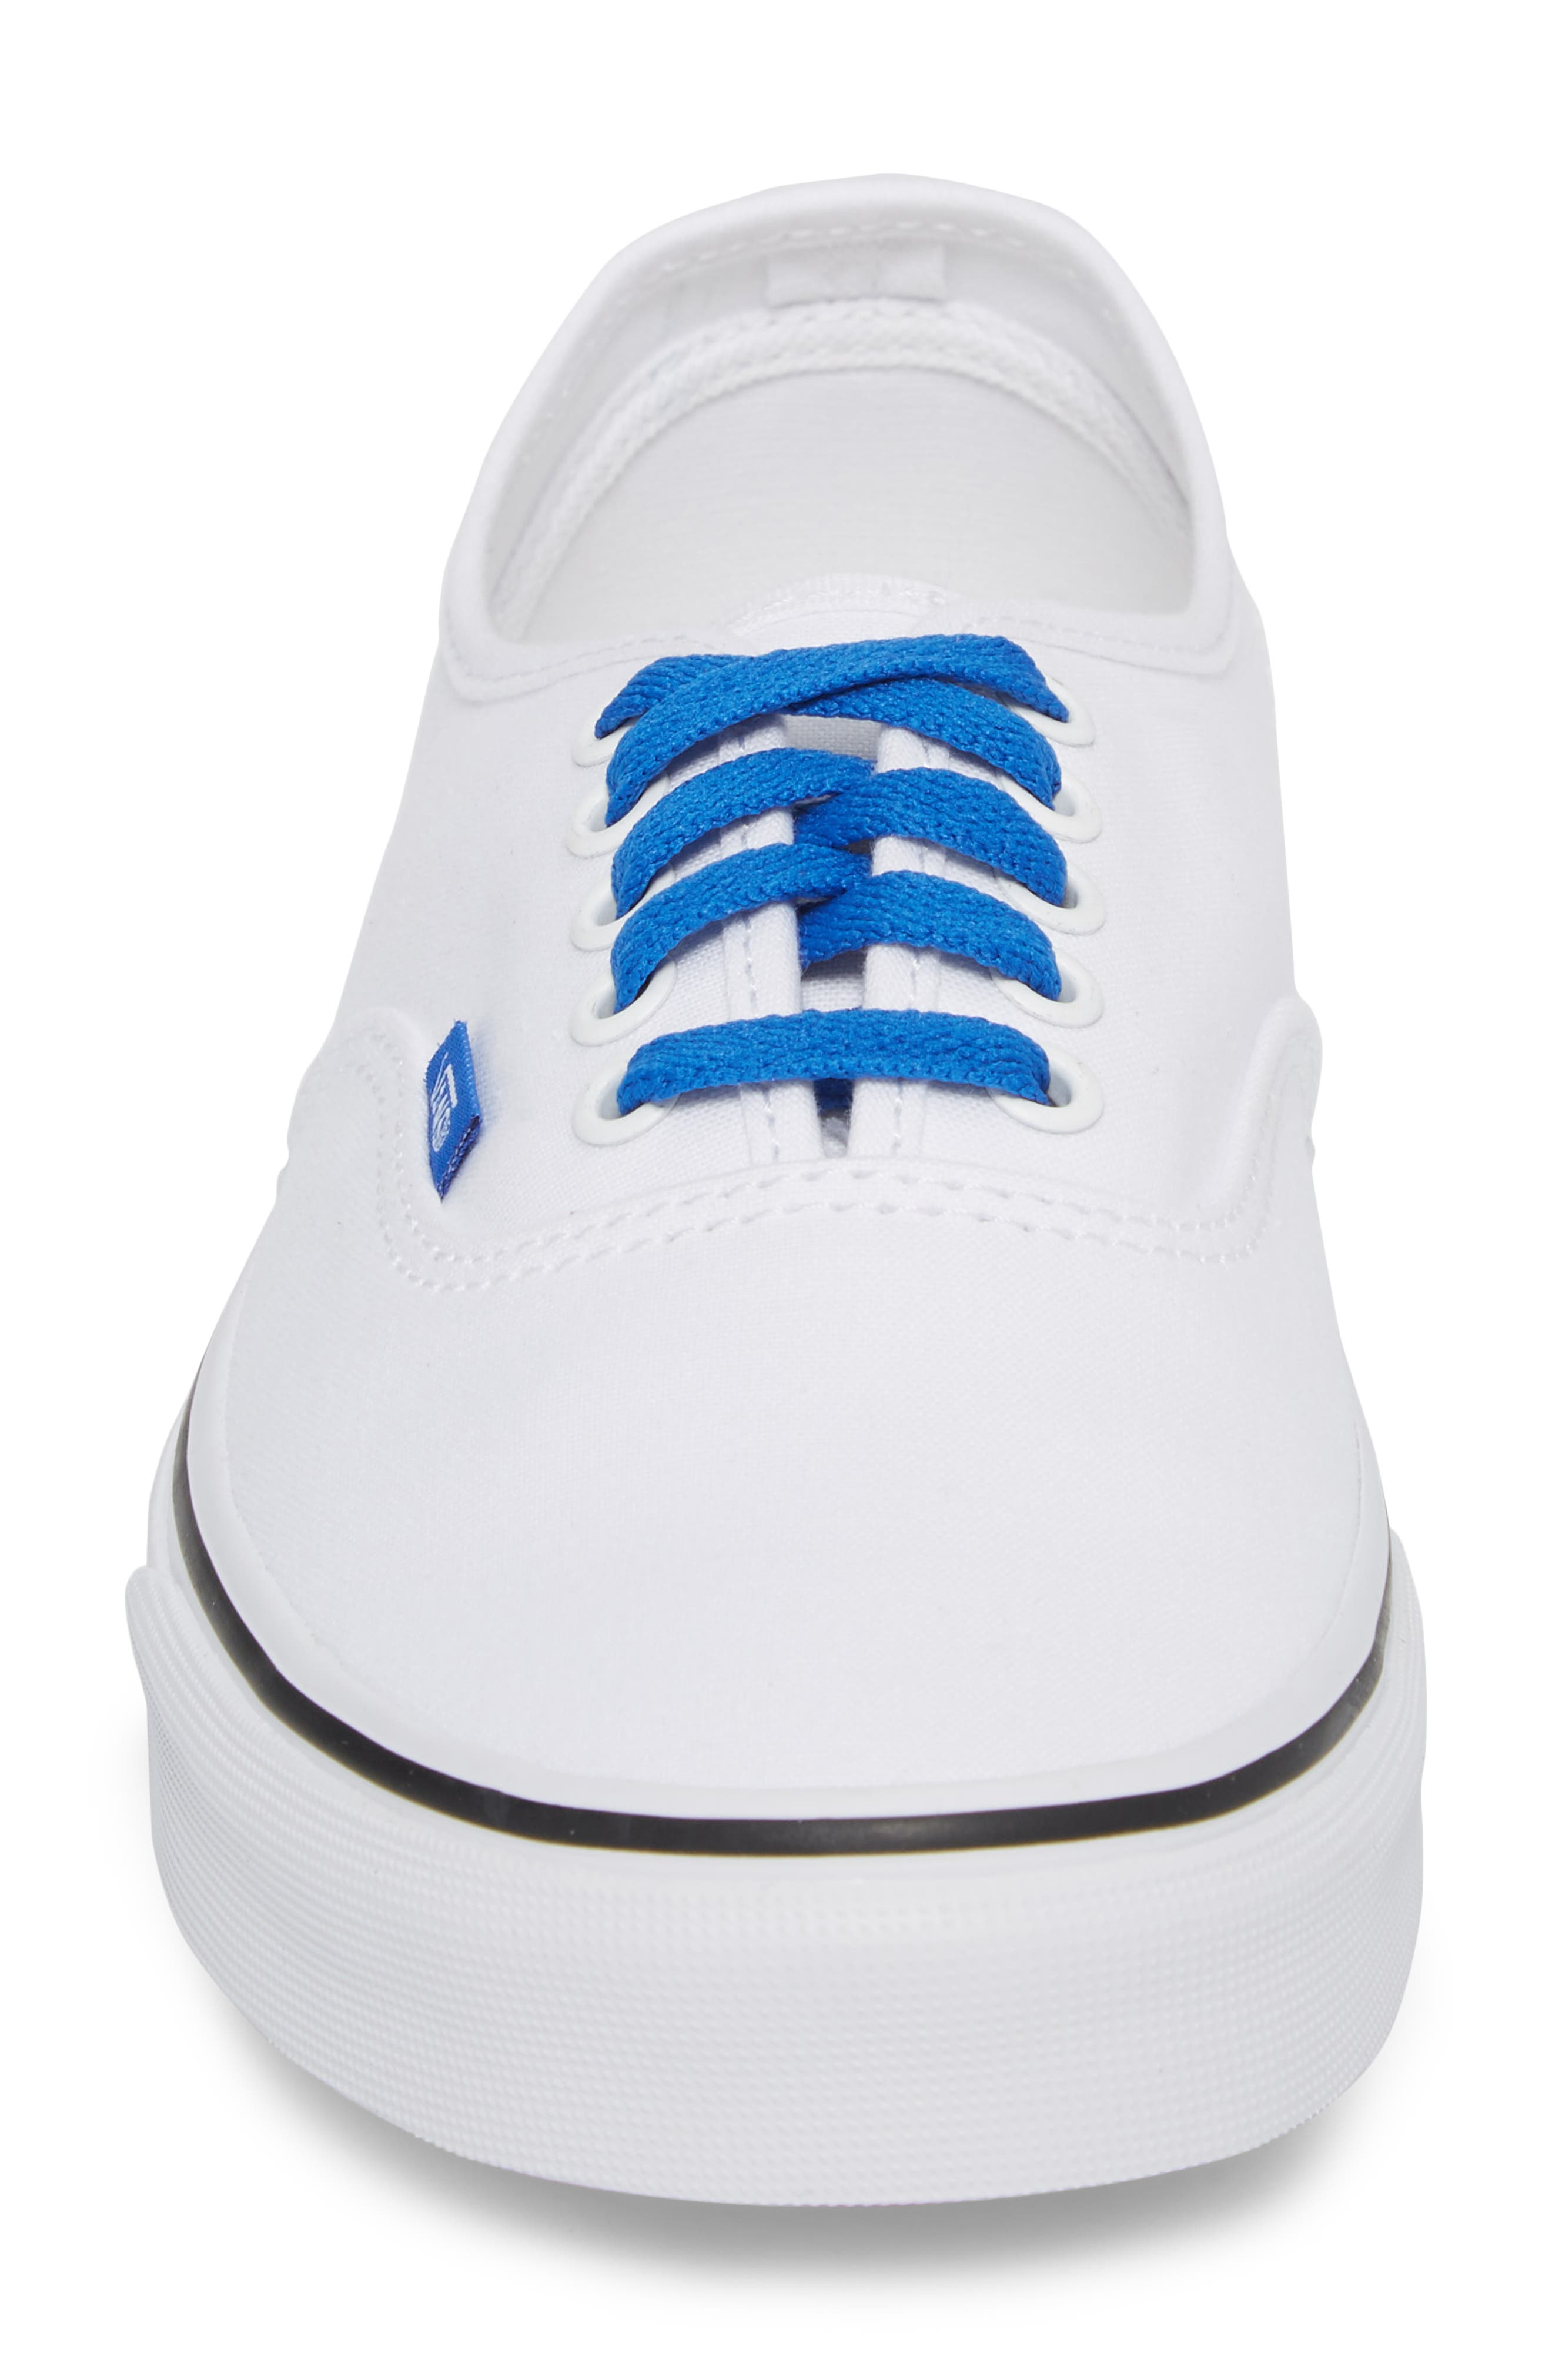 Authentic Sketch Sidewall Sneaker,                             Alternate thumbnail 4, color,                             True White/ Victoria Blue